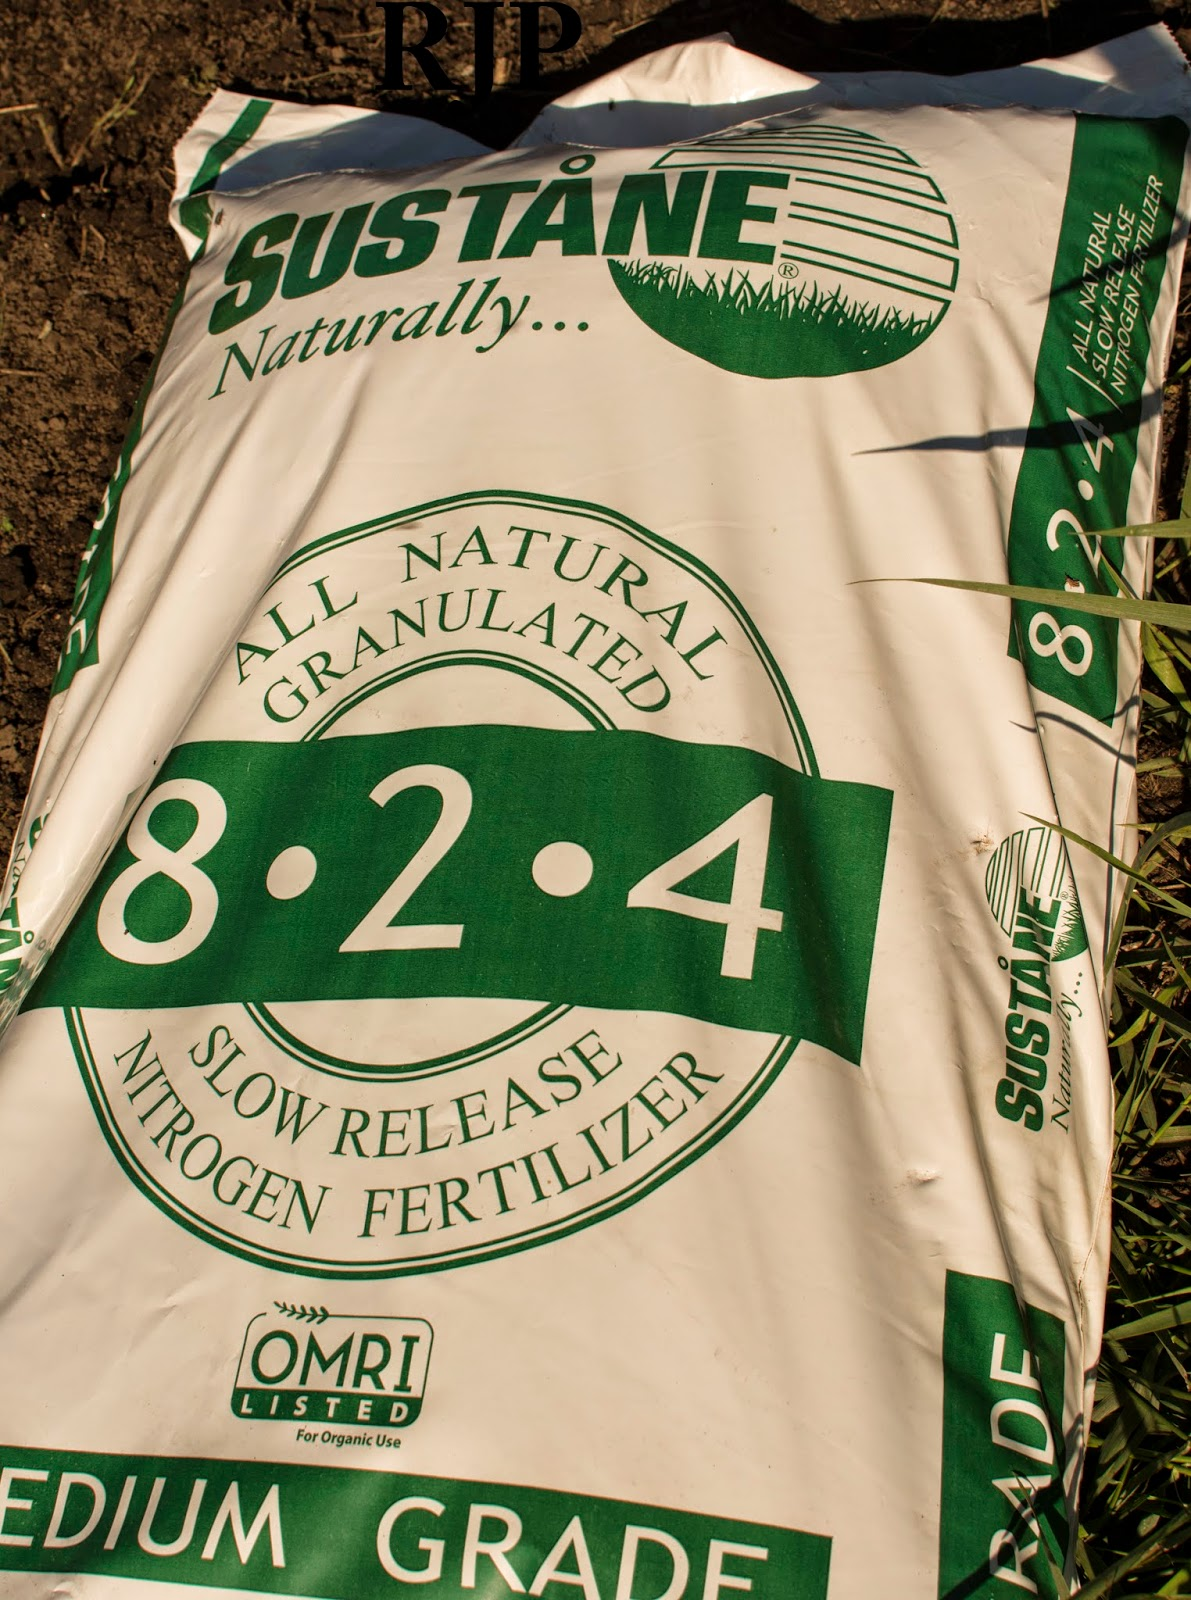 Sustane Fertilizer we use on all of the plants we pot up. Photo Cred: Reed